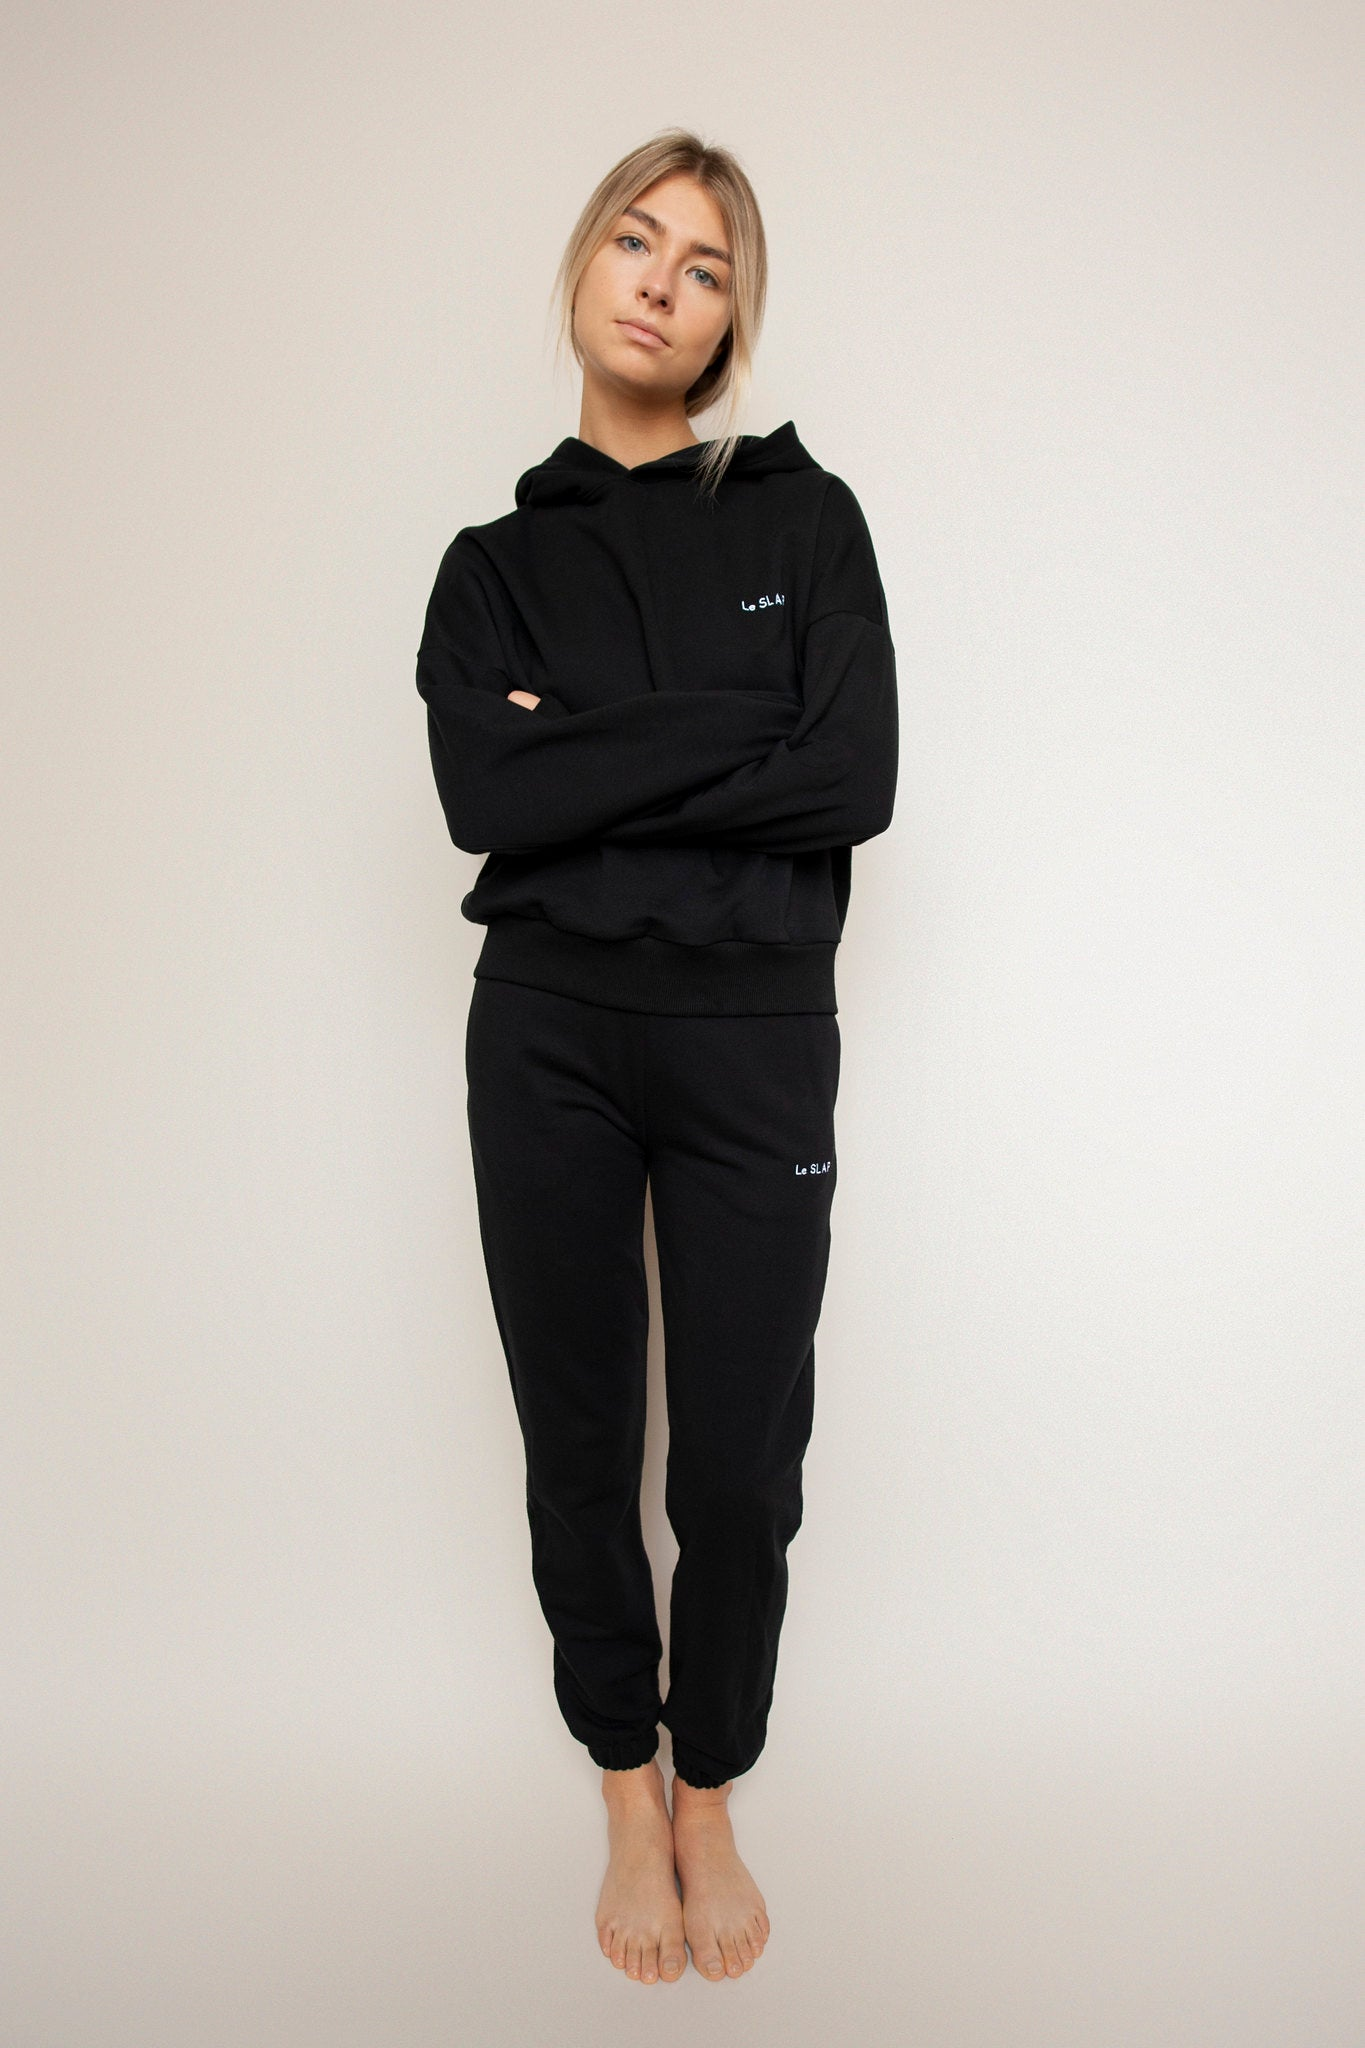 Hoodie Black | UNIFORM collection